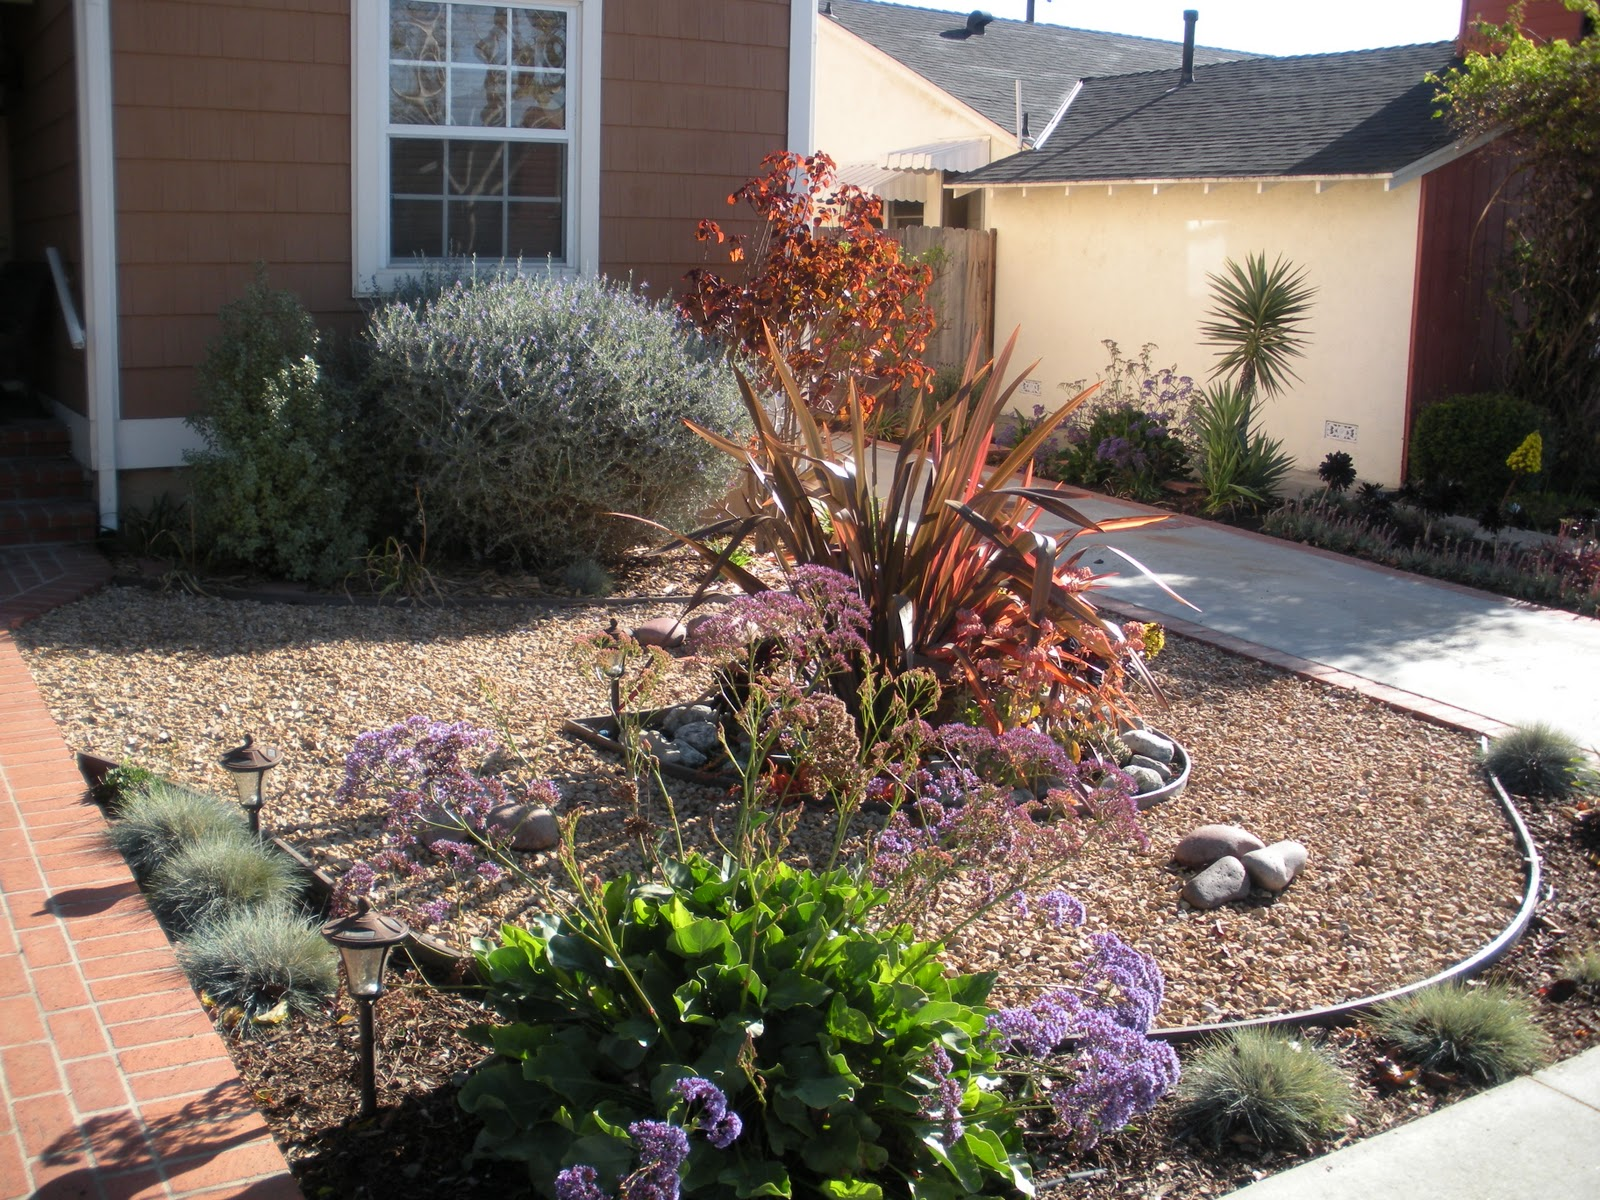 2018 Mar Vista Green Garden Showcase January 2011